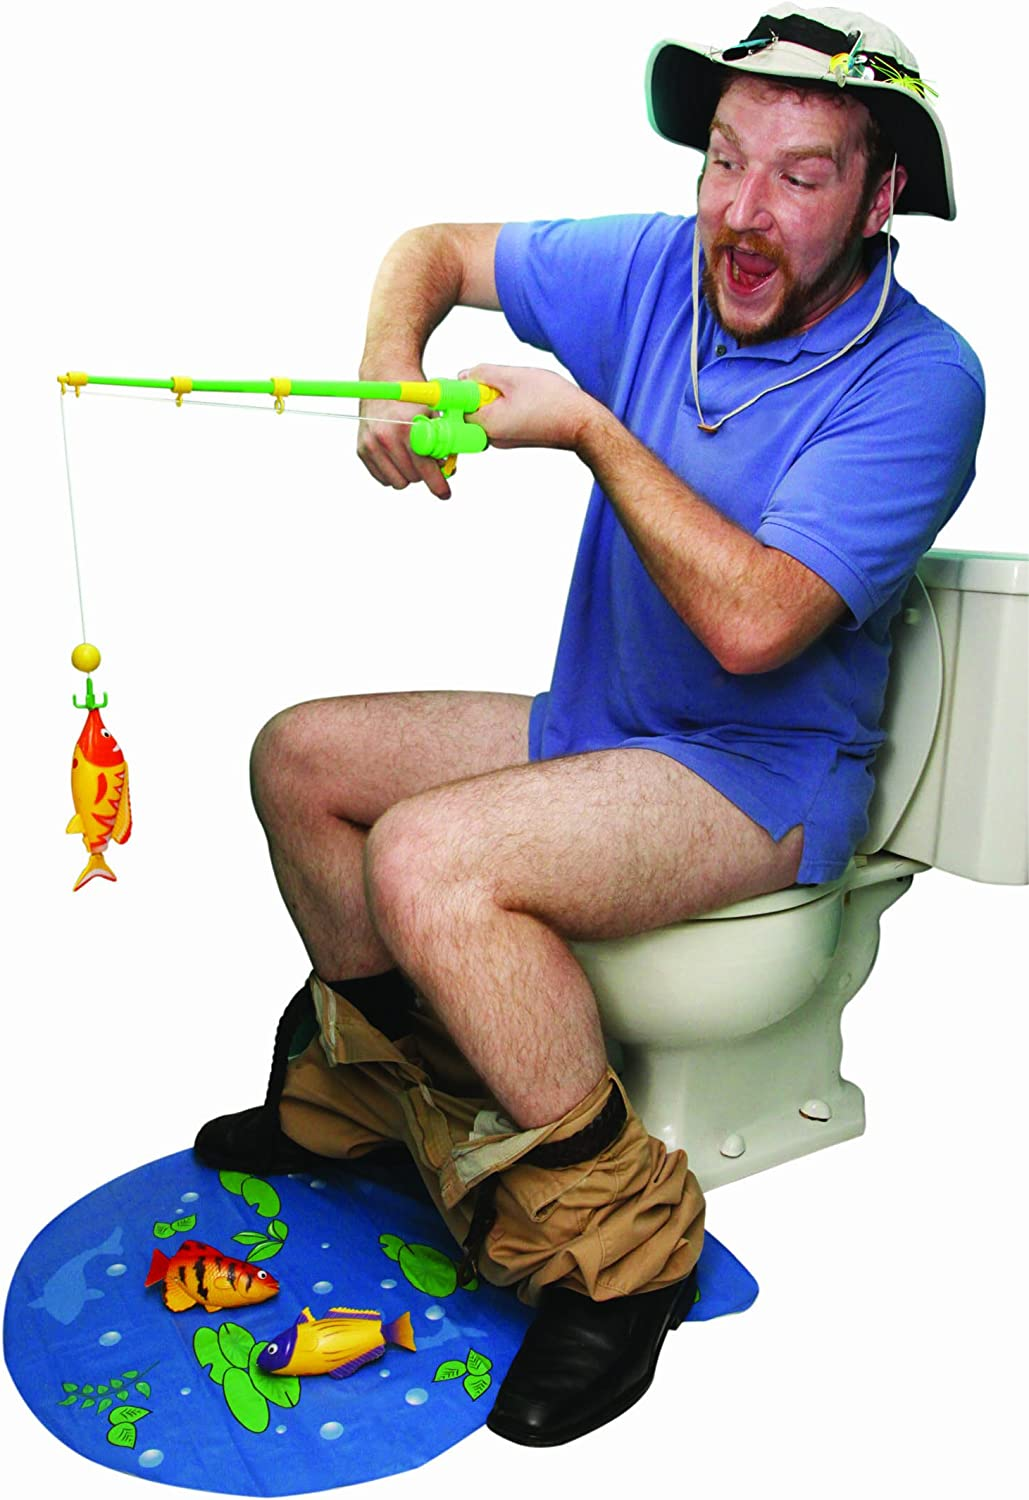 10 pieces Island Dogs Toilet Fishing Novelty Game Set